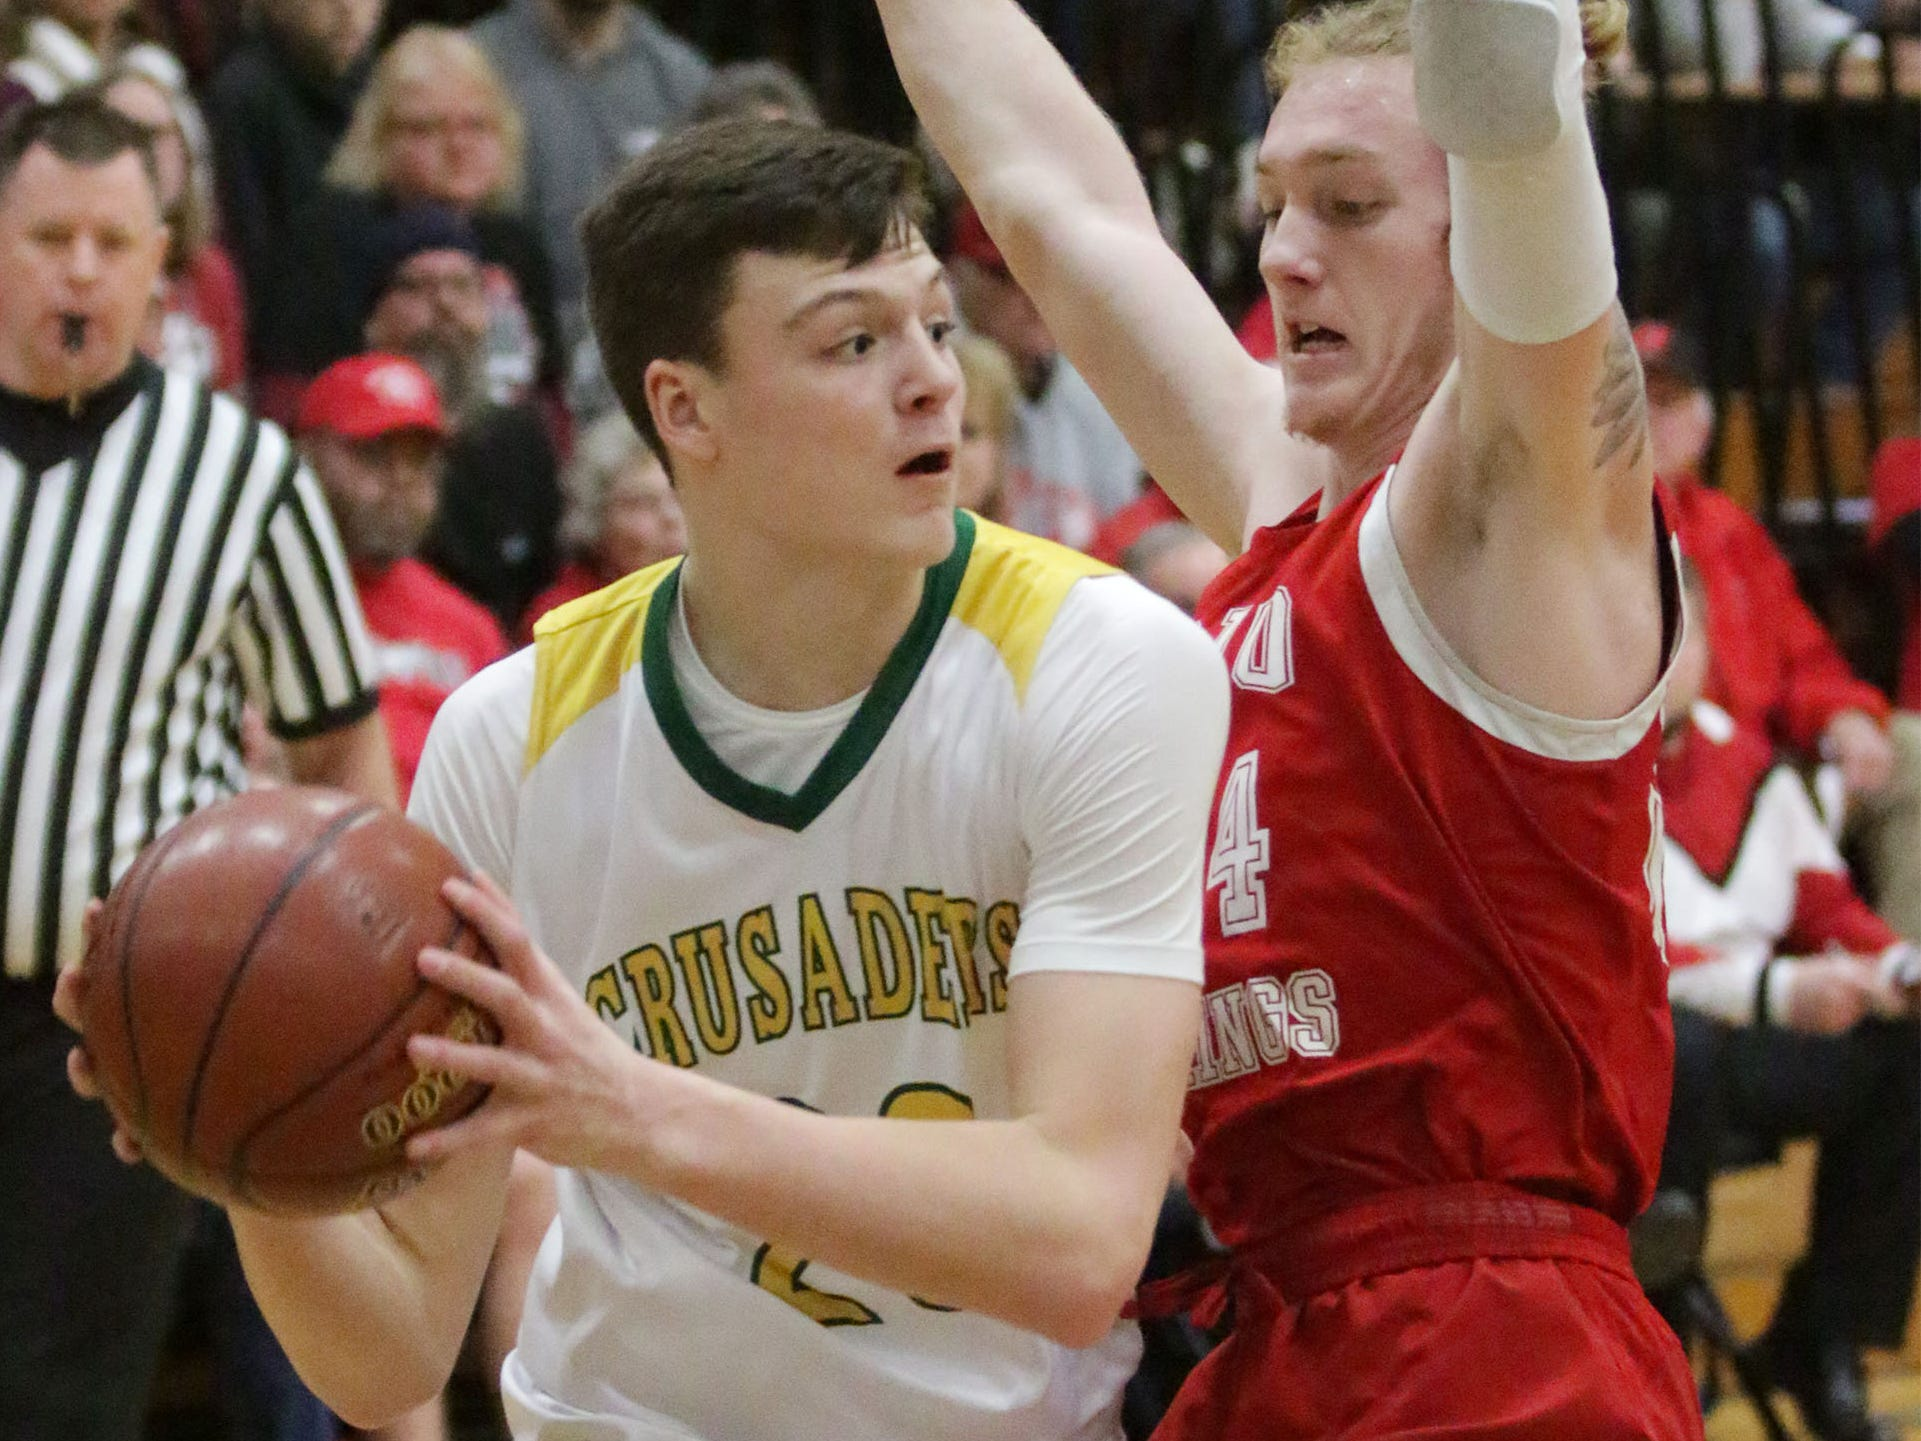 Sheboygan Lutheran's Jacob Ognacevic (23) looks to pass the ball around Rio's Nathan Rippl (24), Saturday, March 9, 2019, in West Bend, Wis.